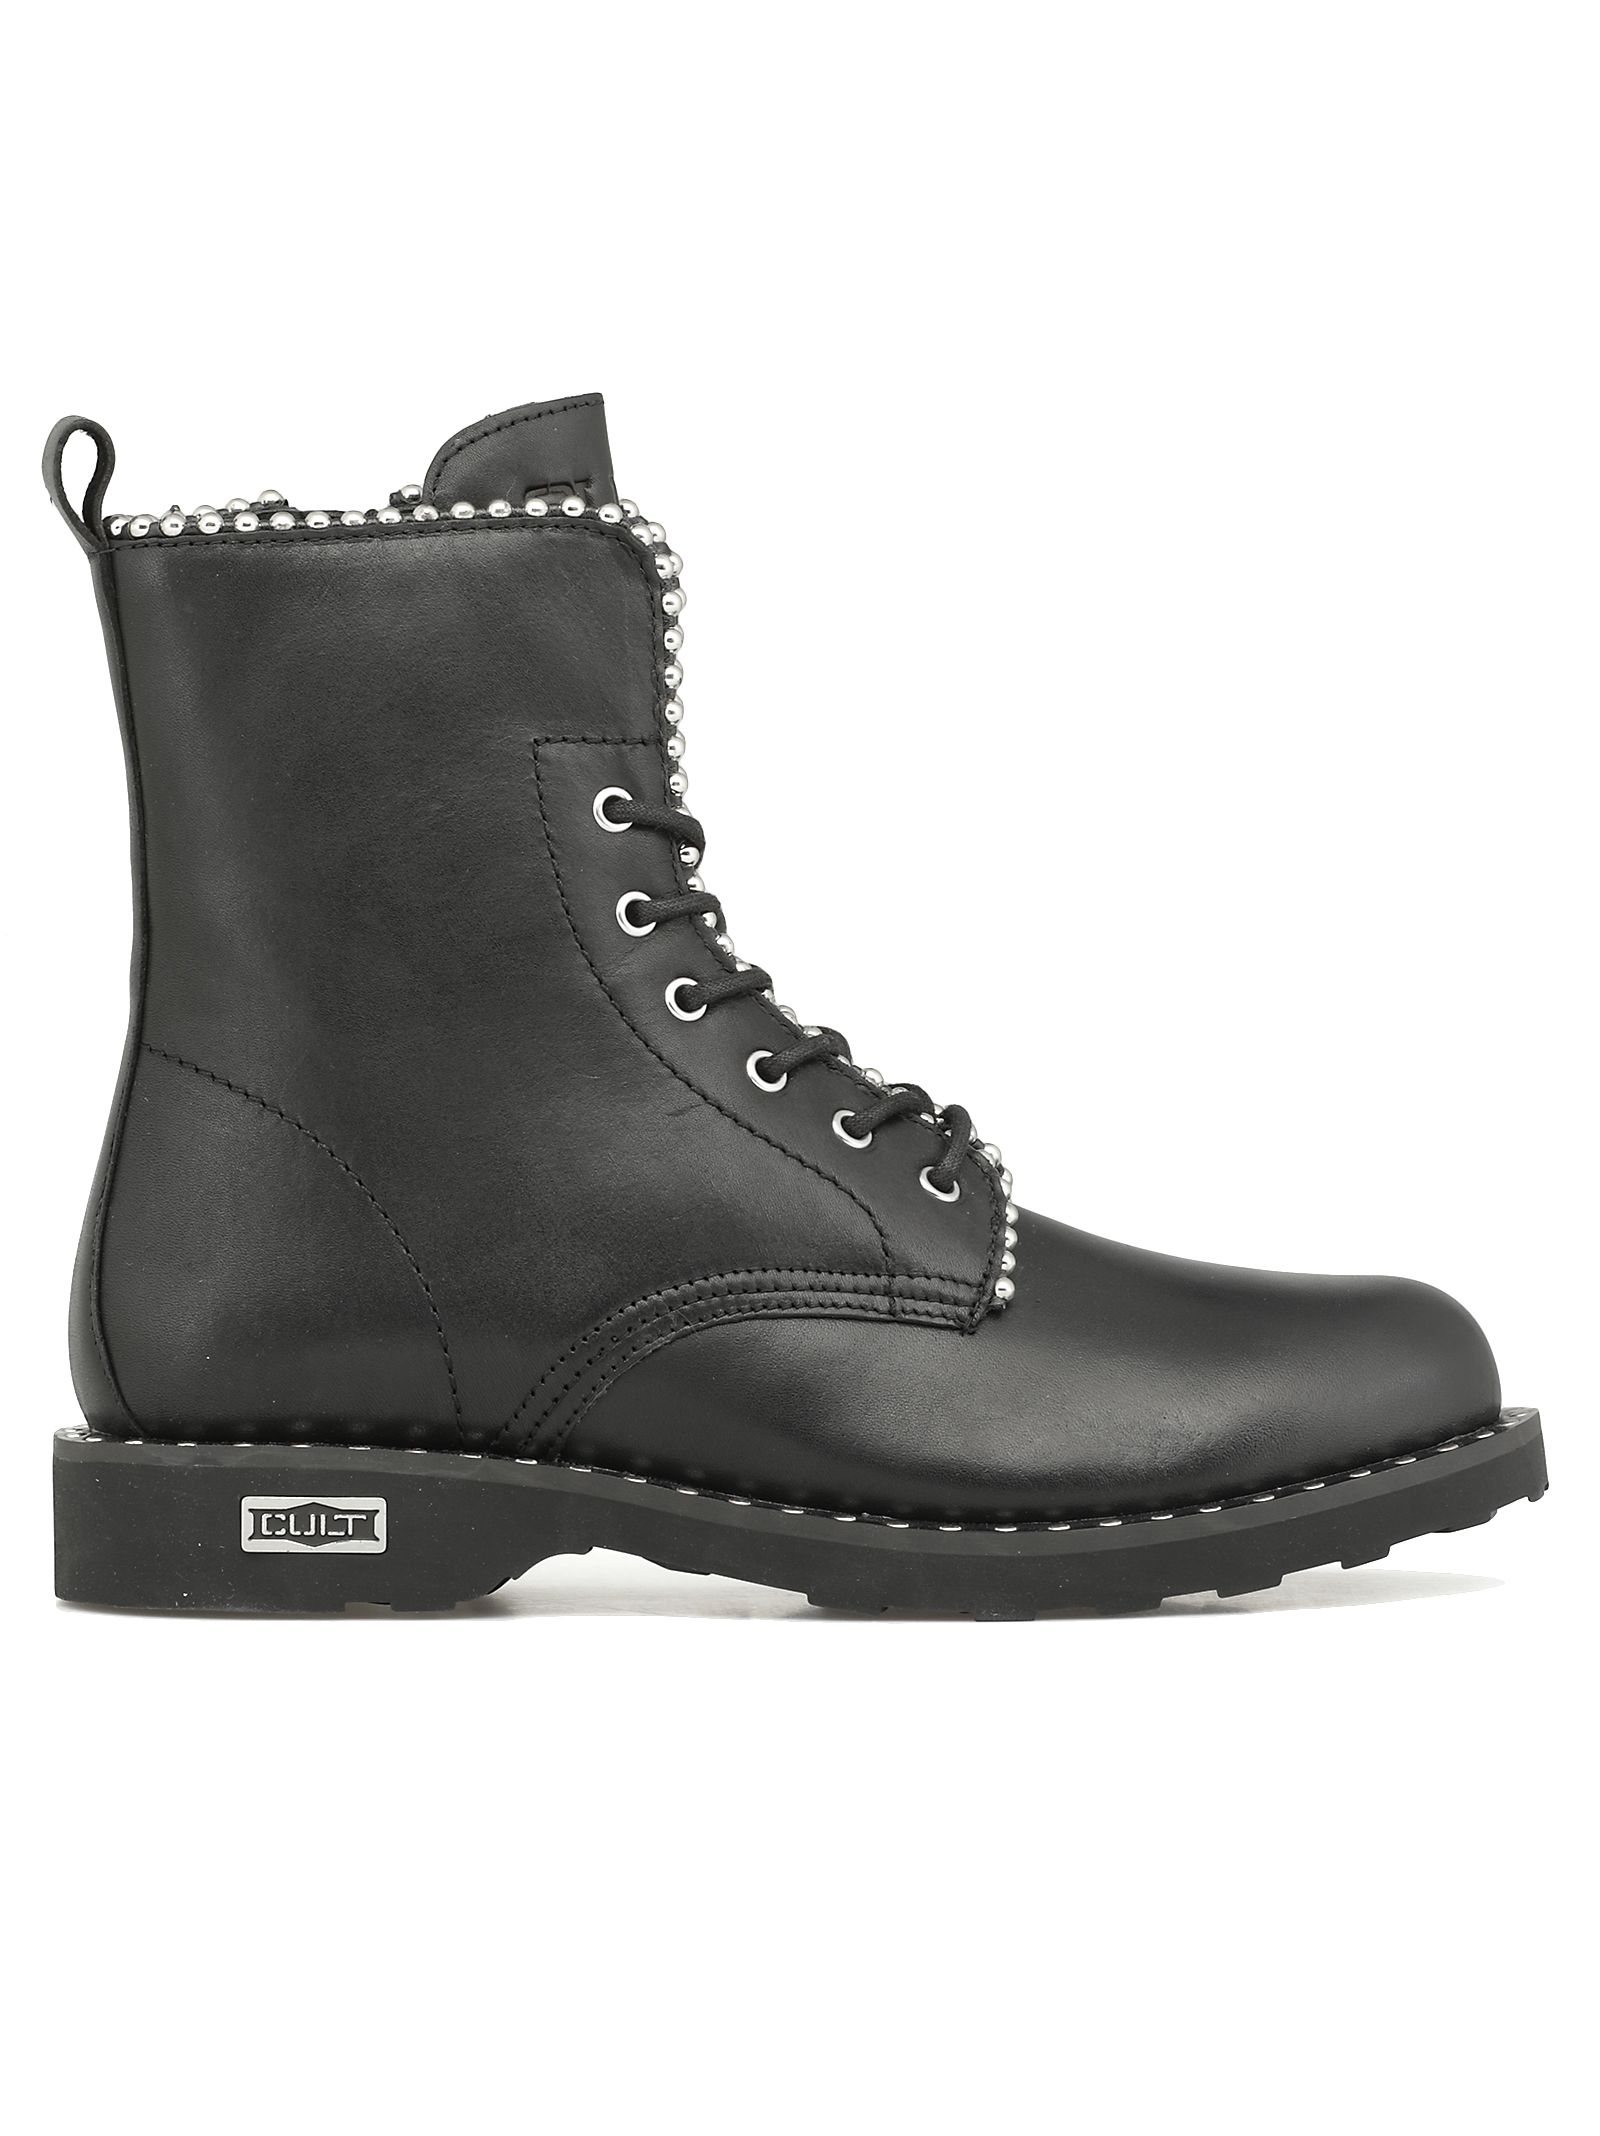 CULT Zeppelin Mid 2662 Army Boot in Black